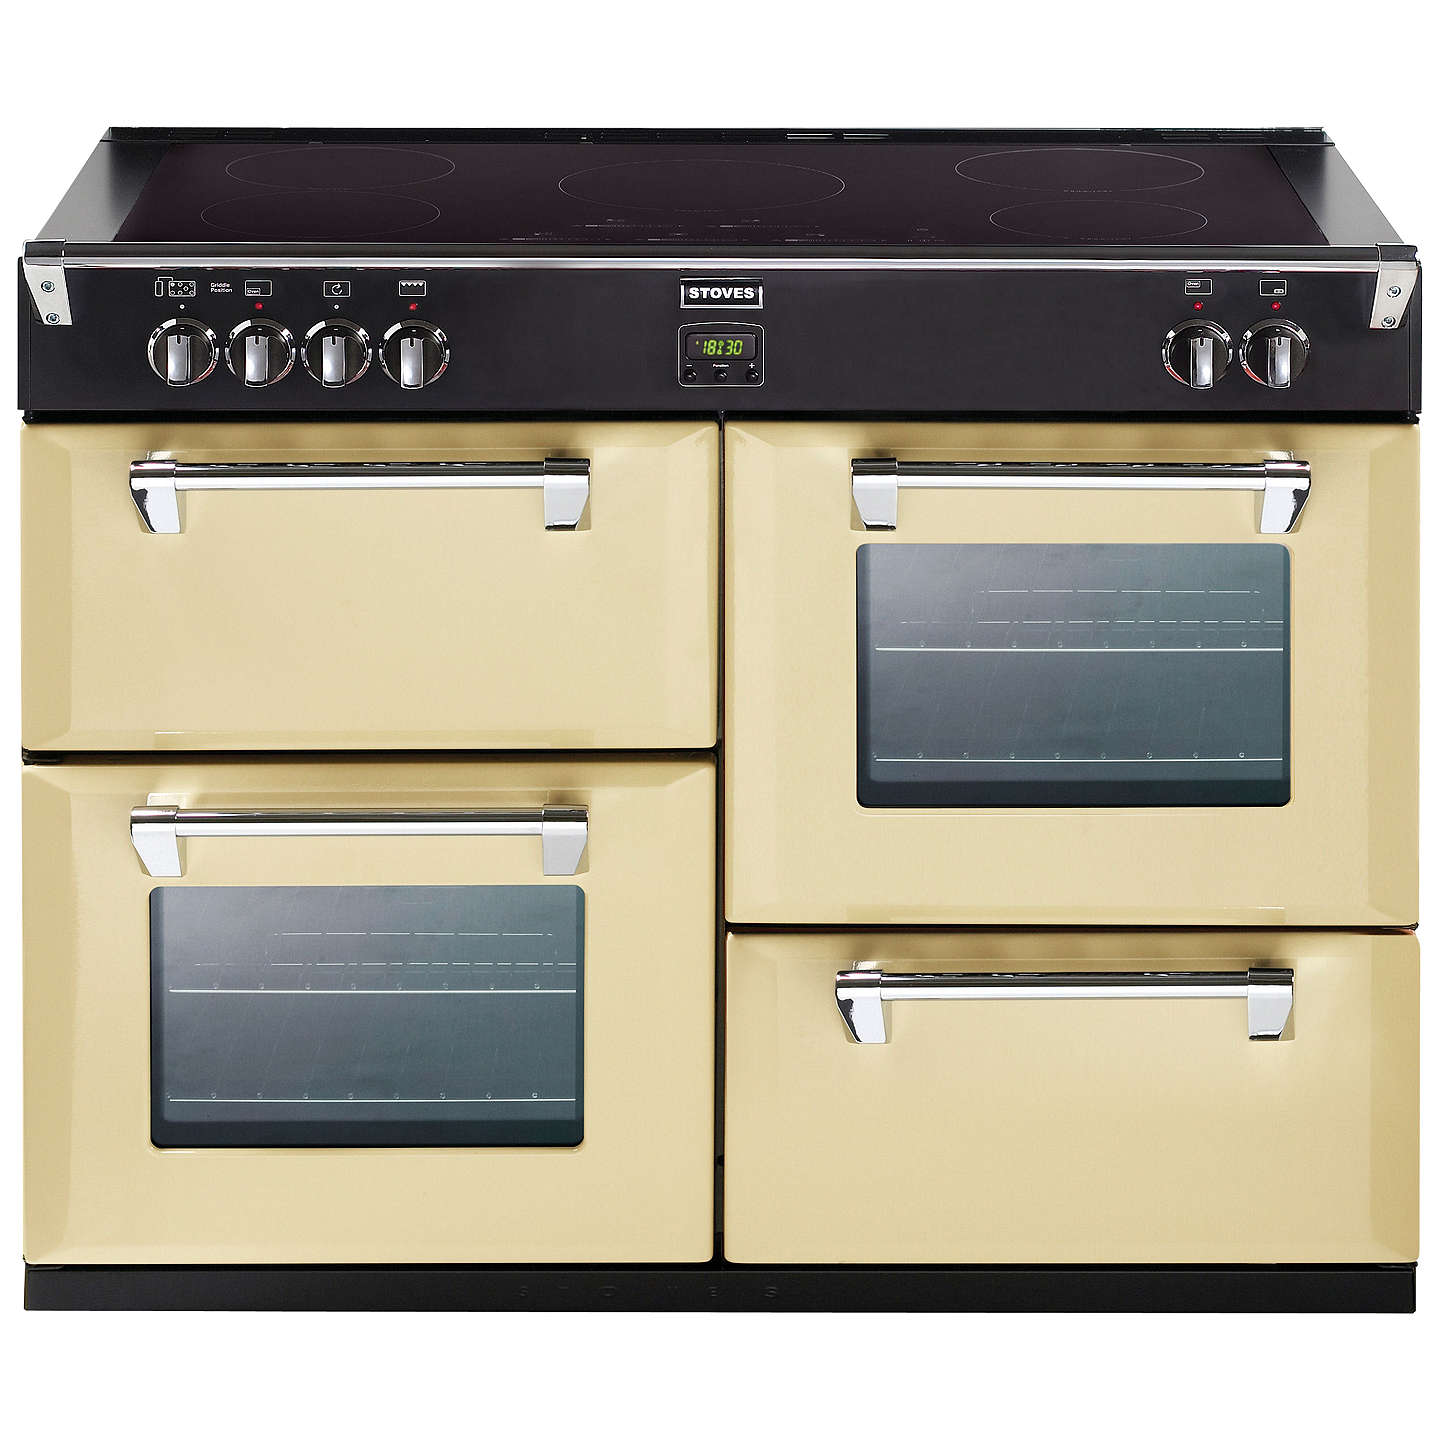 BuyStoves Richmond 1000Ei Induction Hob Range Cooker, Champagne Online at johnlewis.com